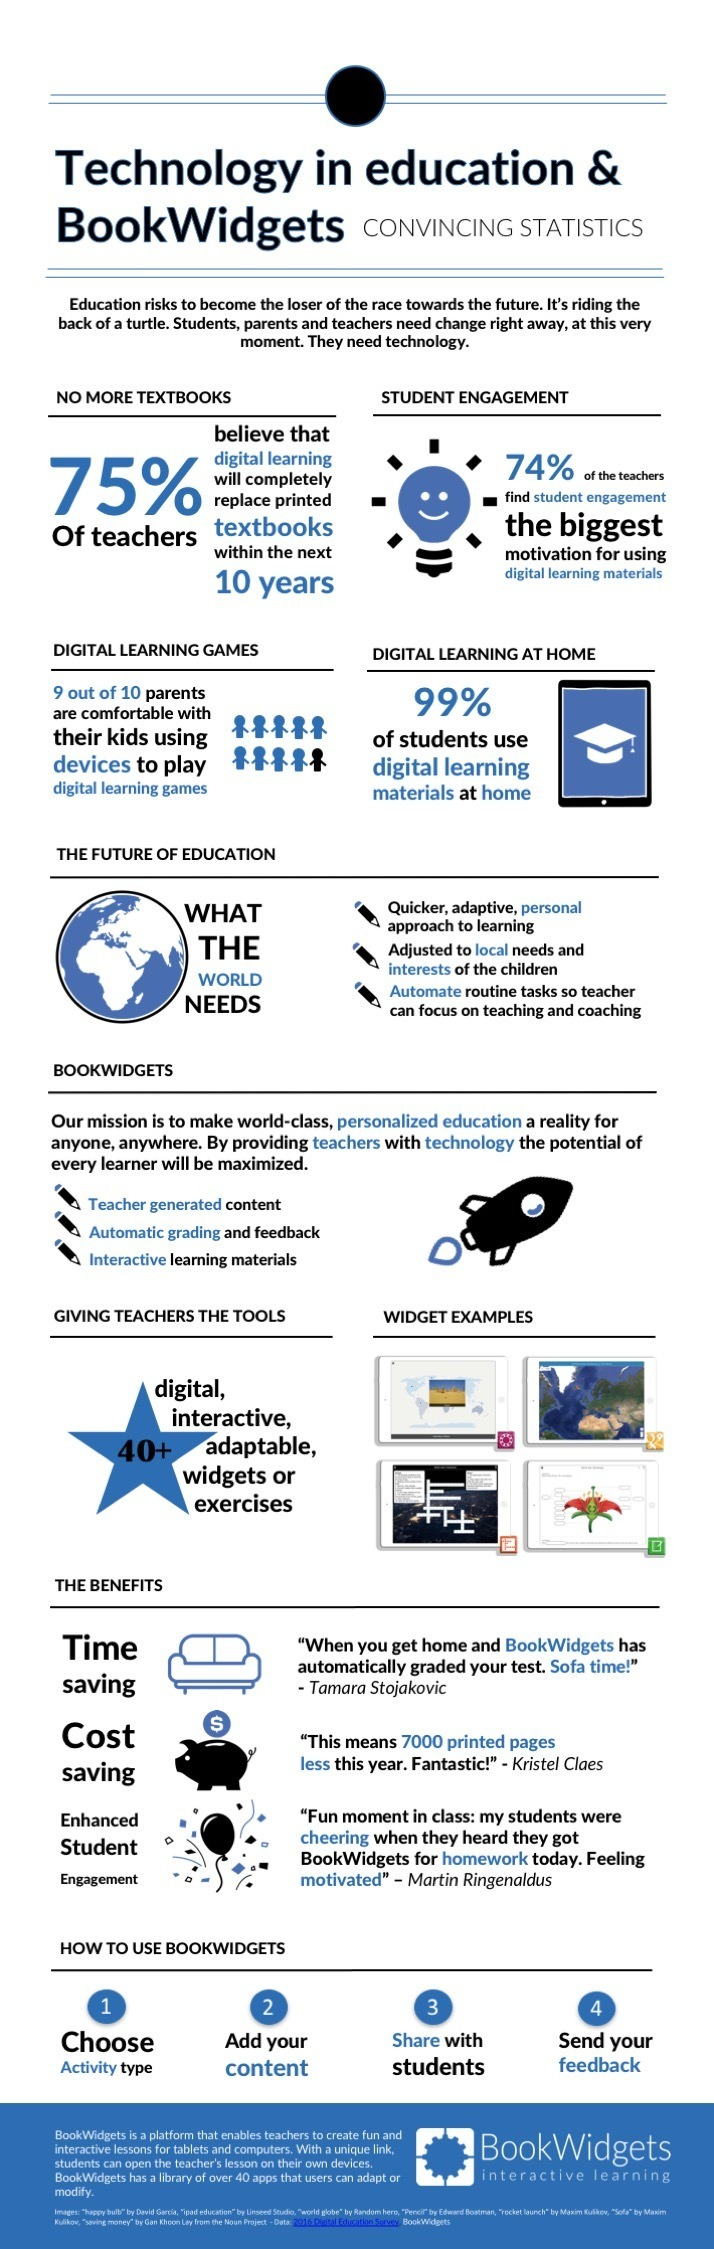 Technology in Education and BookWidgets Infographic